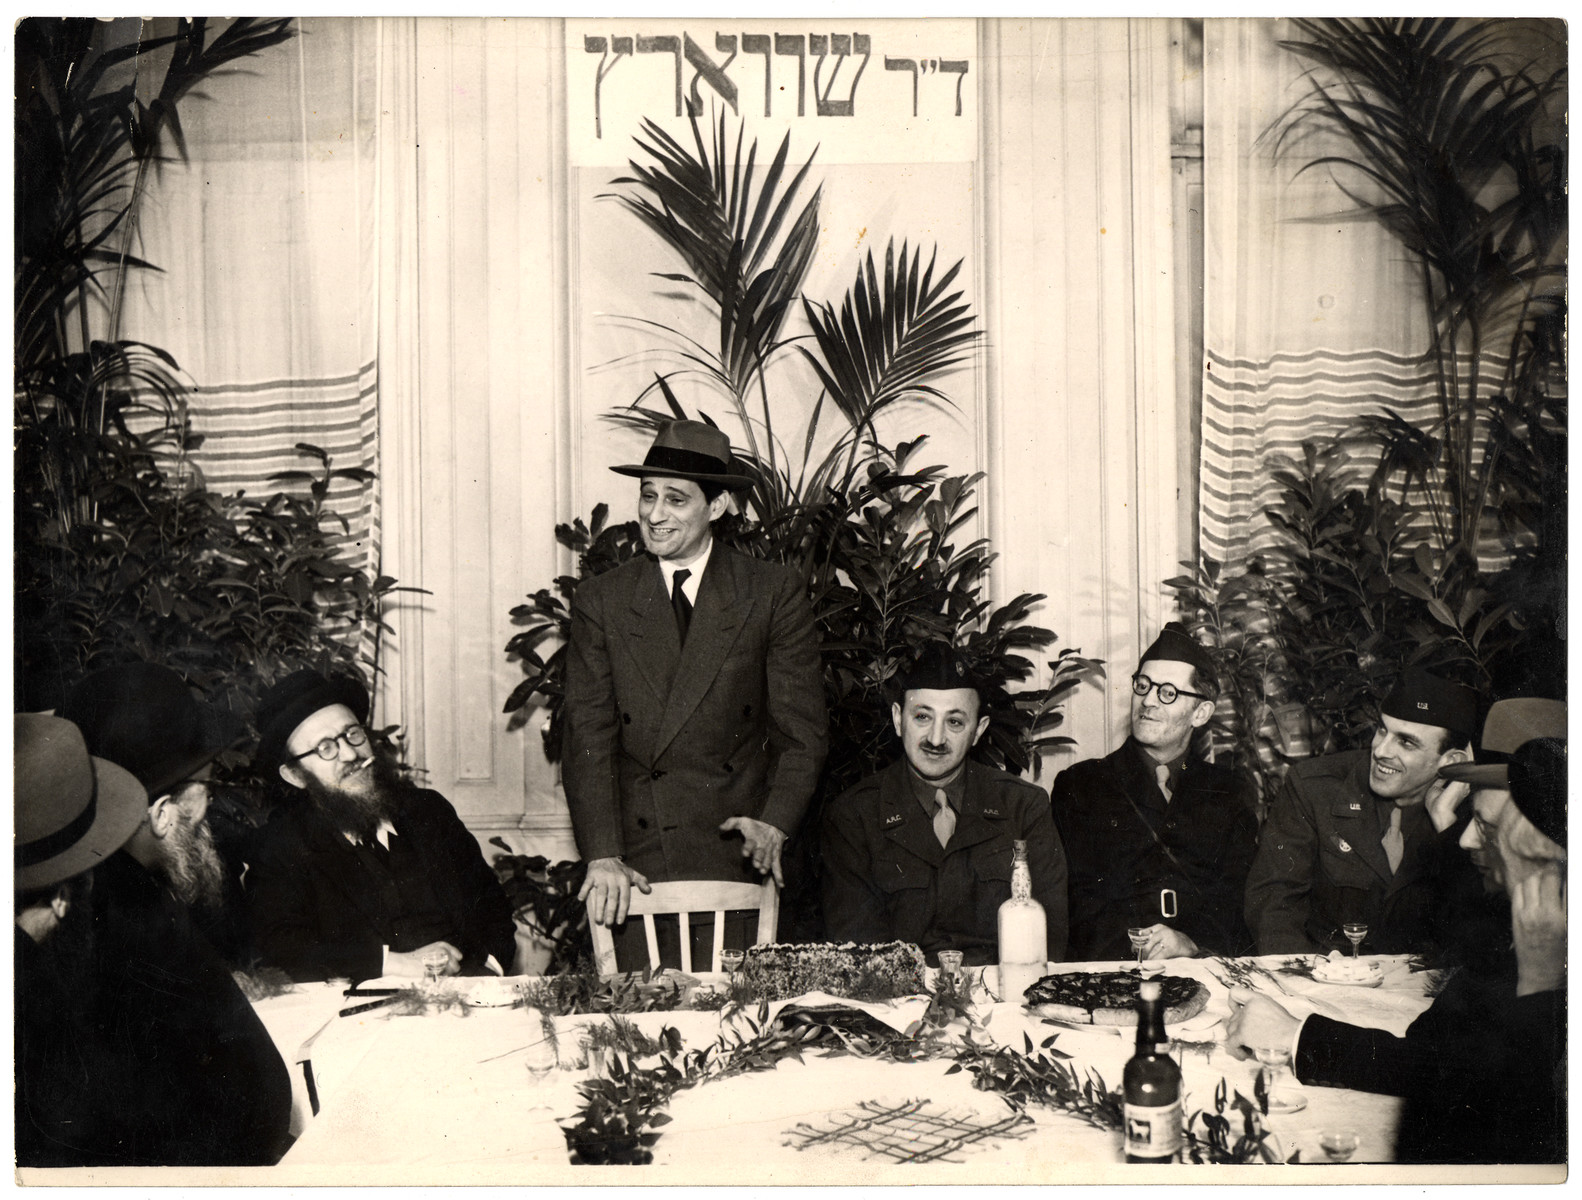 Joseph Schwartz, the European director of the Joint Distribution Committee, addresses a meeting of the Association of Orthodox Jews (AIP) in France after the war.  Rabbi Zalman Schneerson is seated to his left.